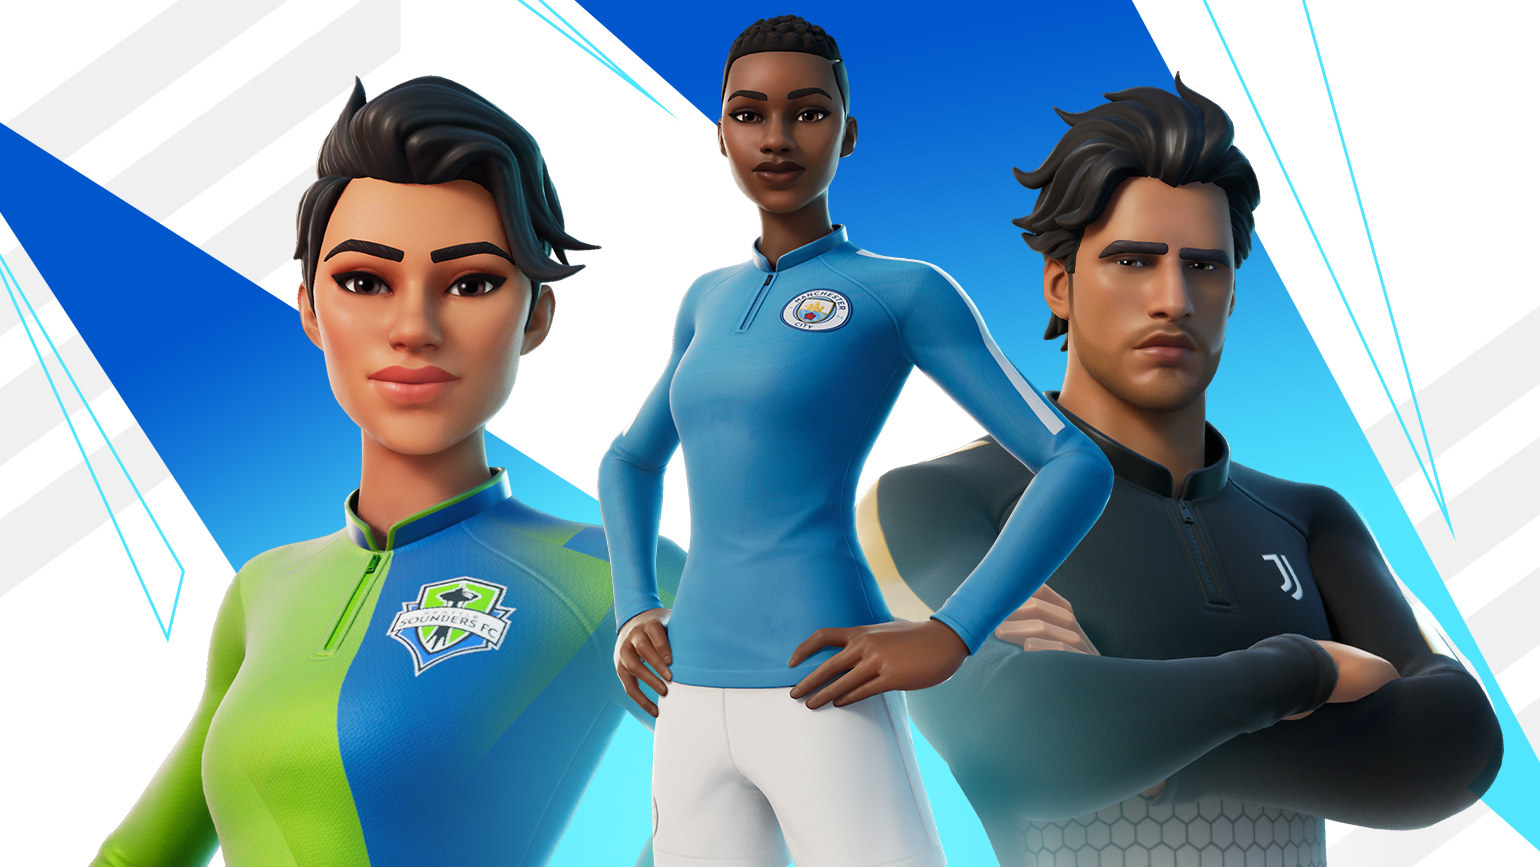 Three Fortnite characters pose in football kits to promote new outfits.